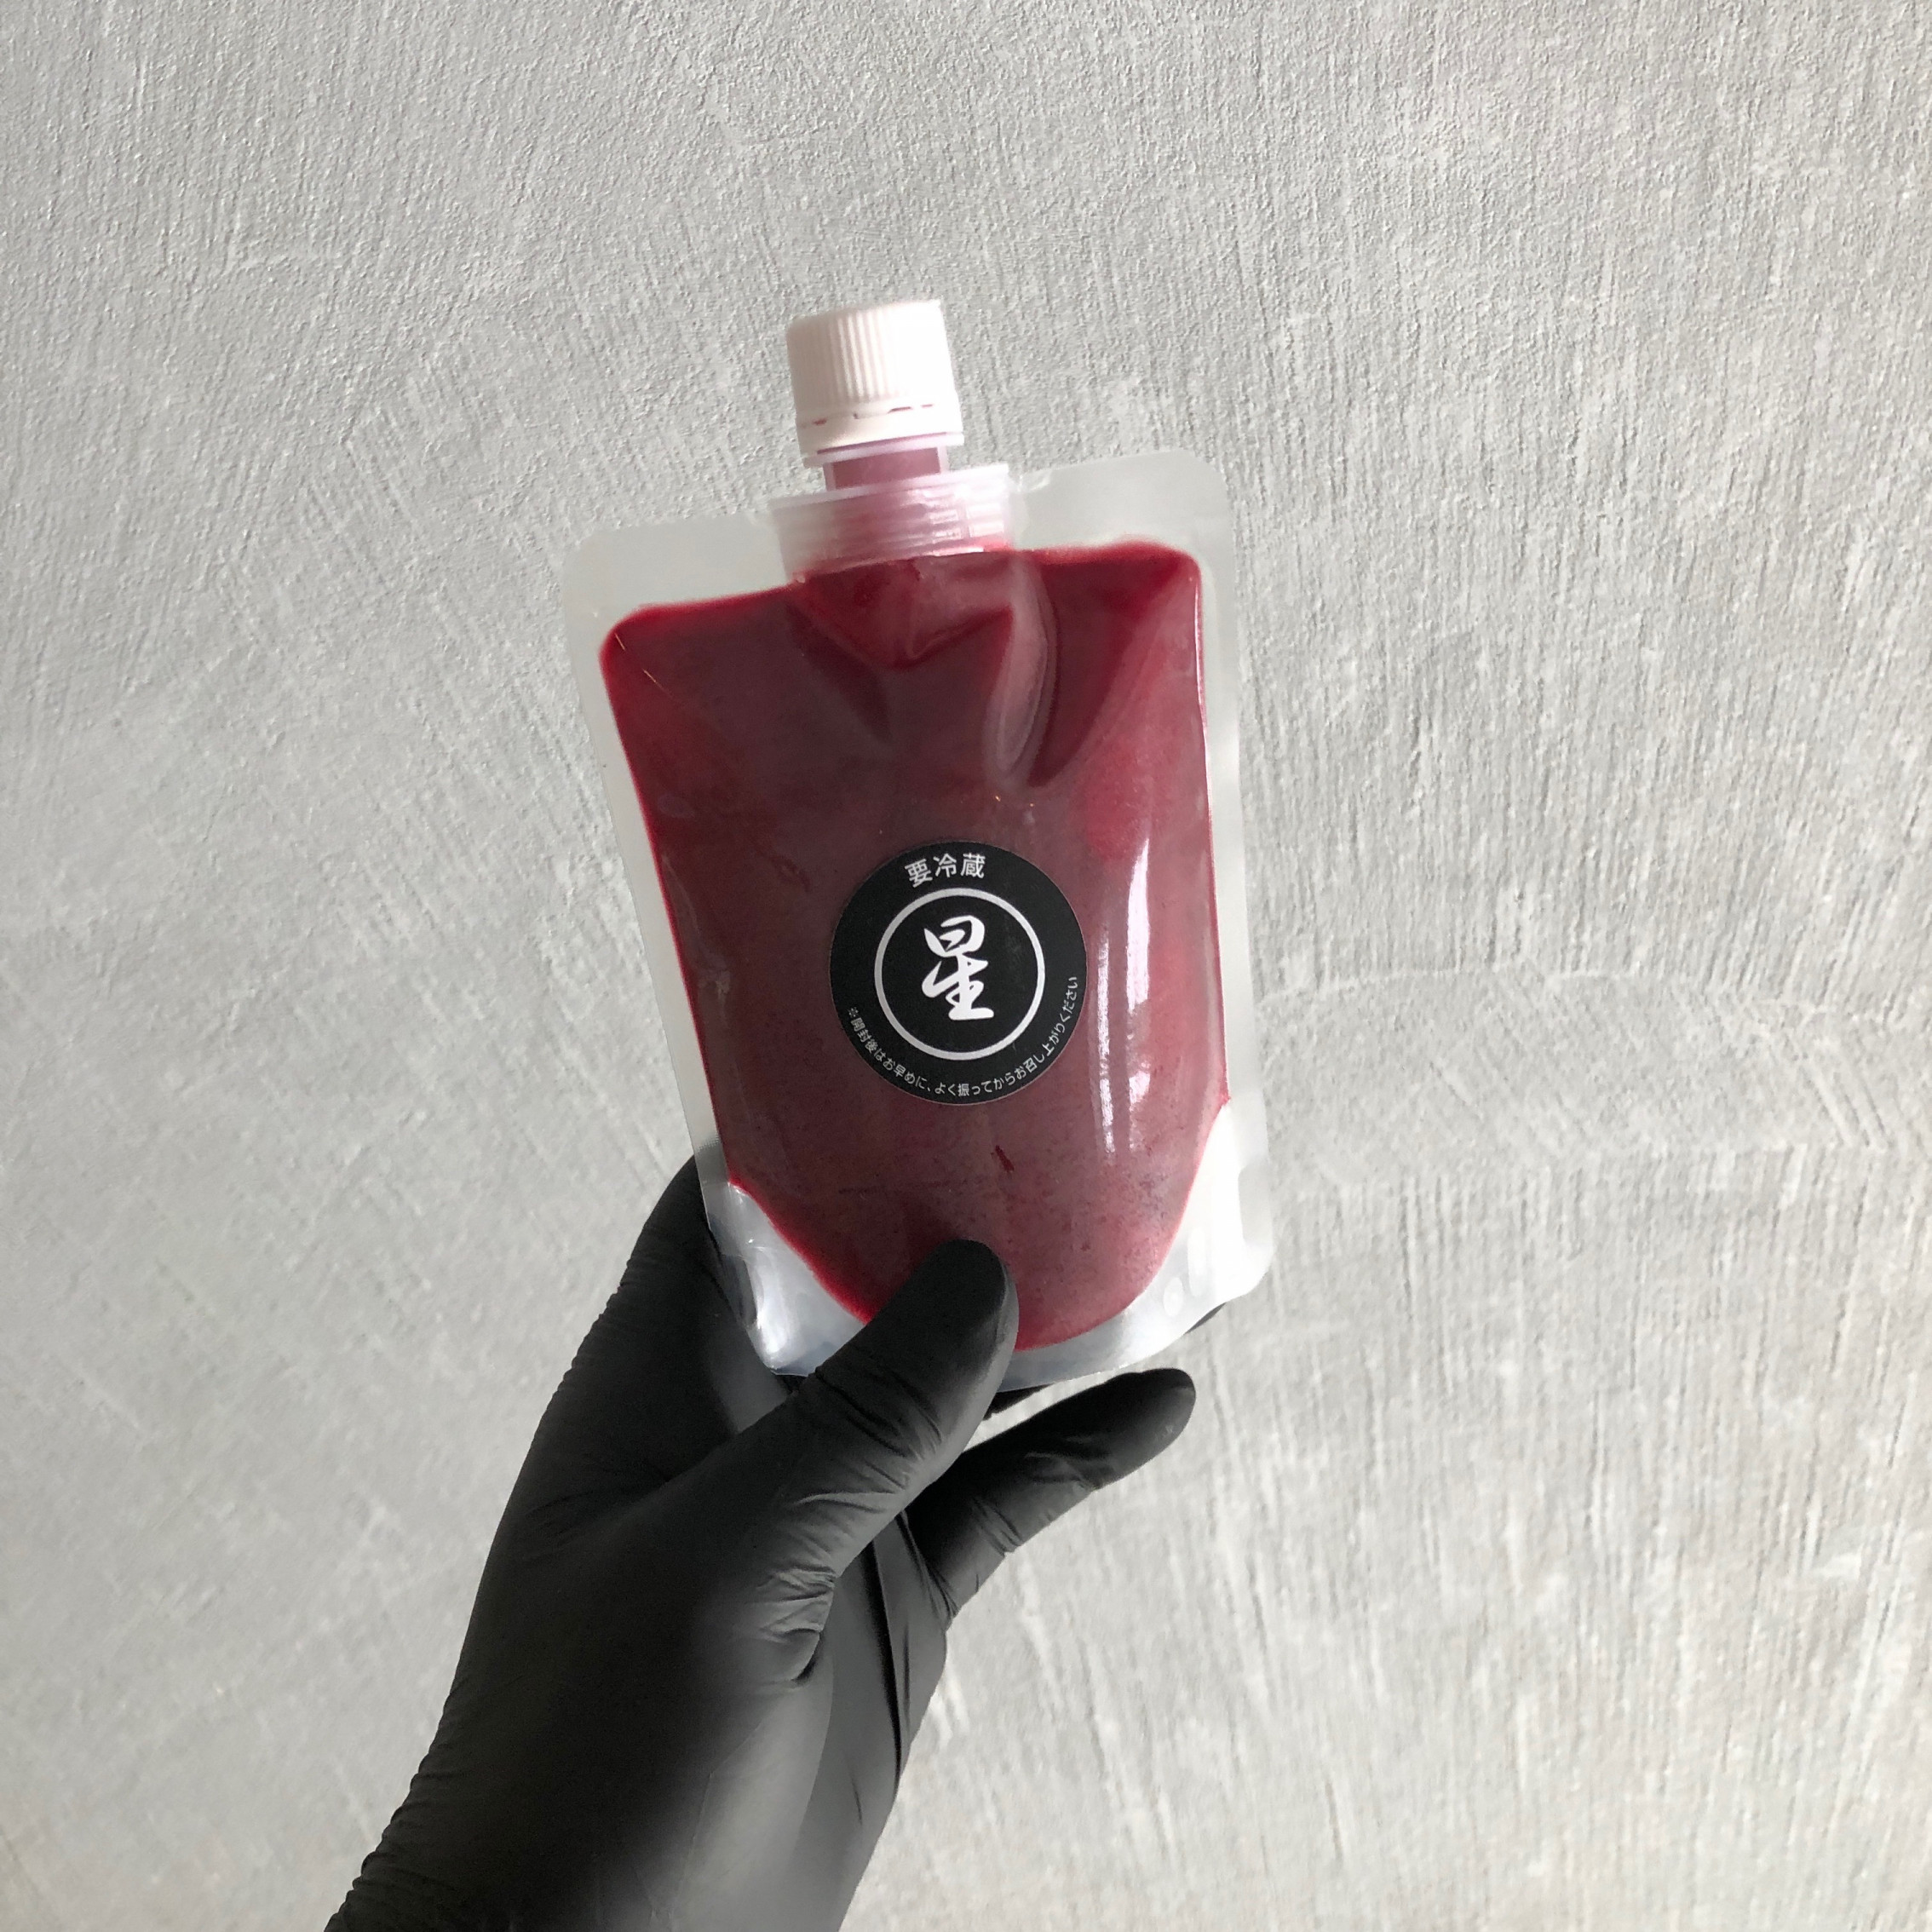 beets of red